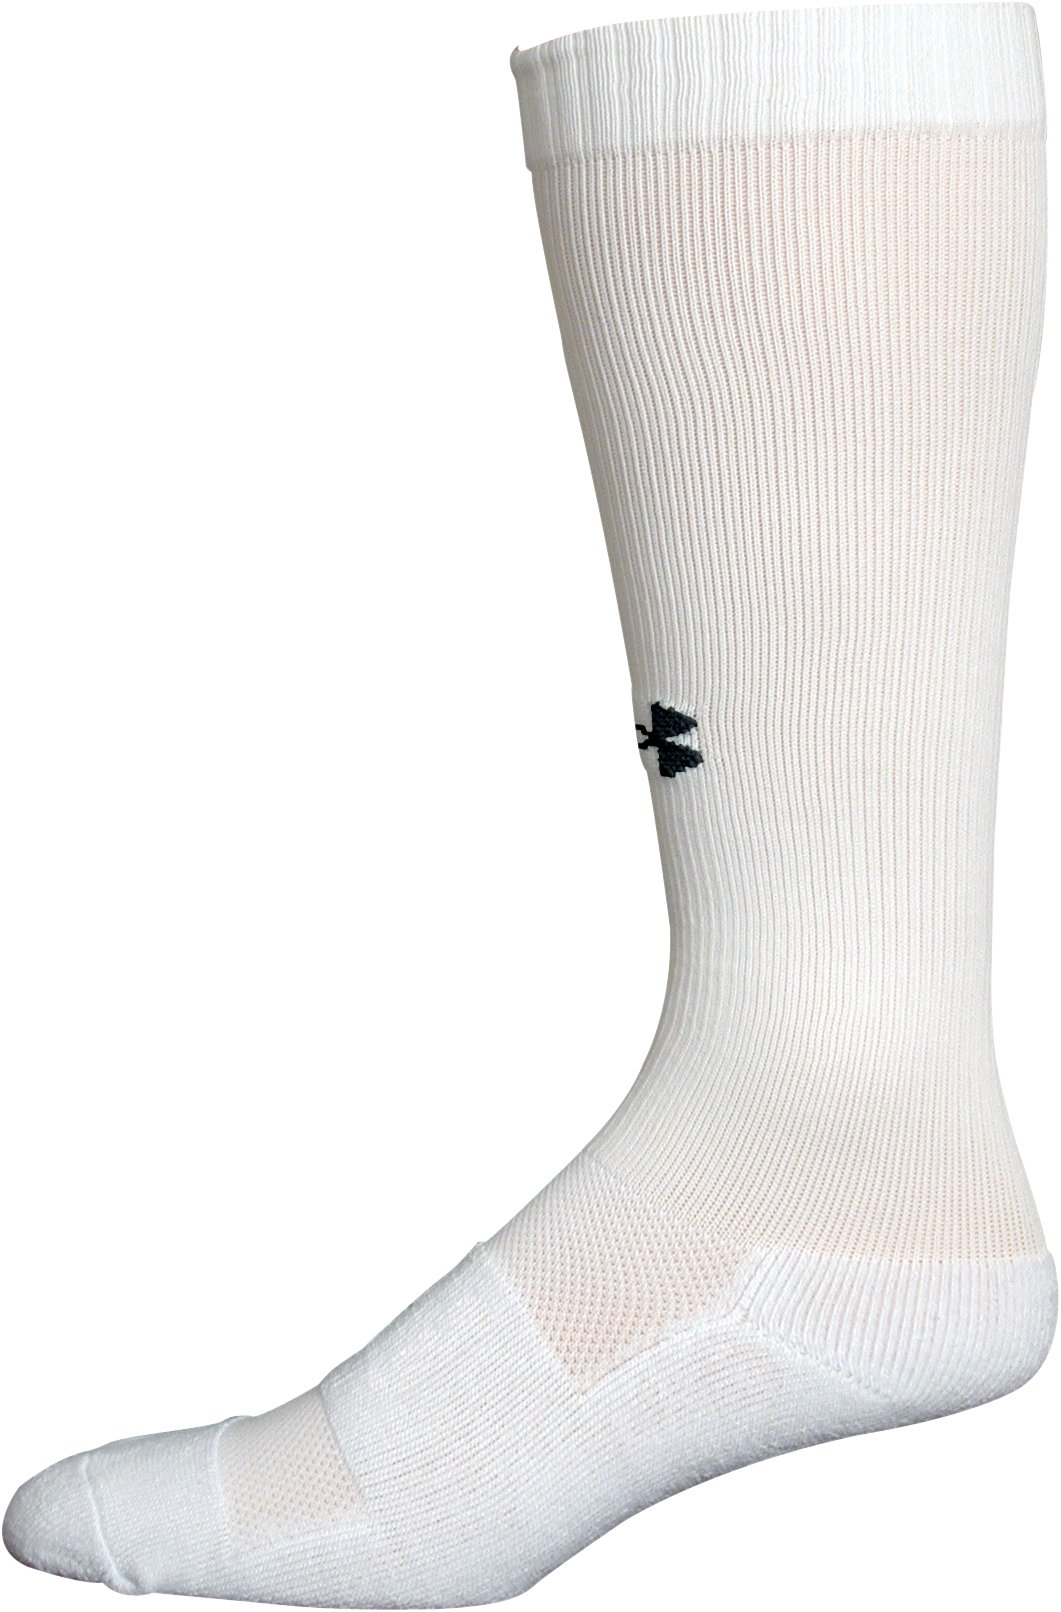 Youth AllSport Socks, White